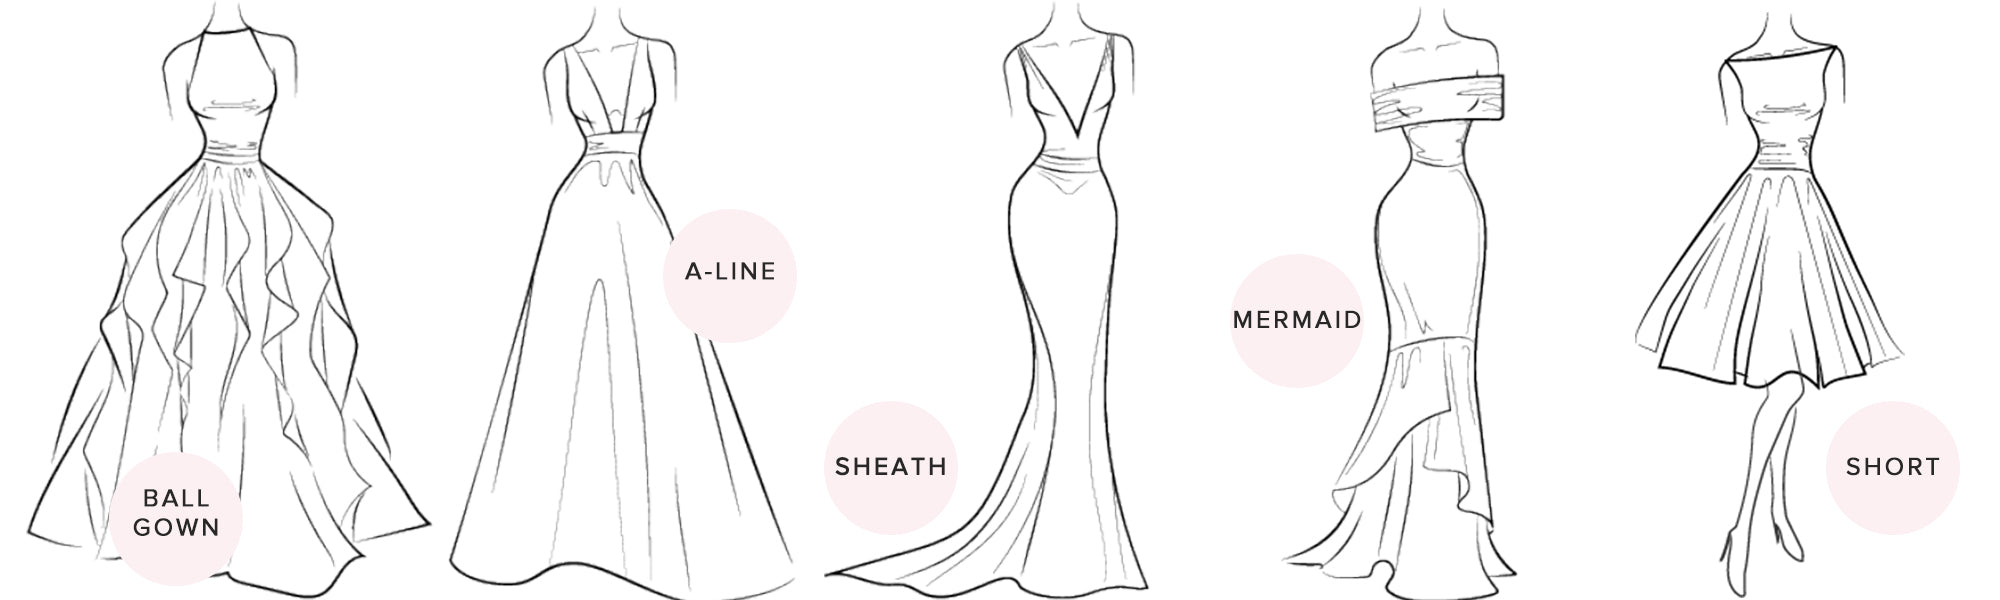 Oleg Cassini Bridal Dress Silhouettes